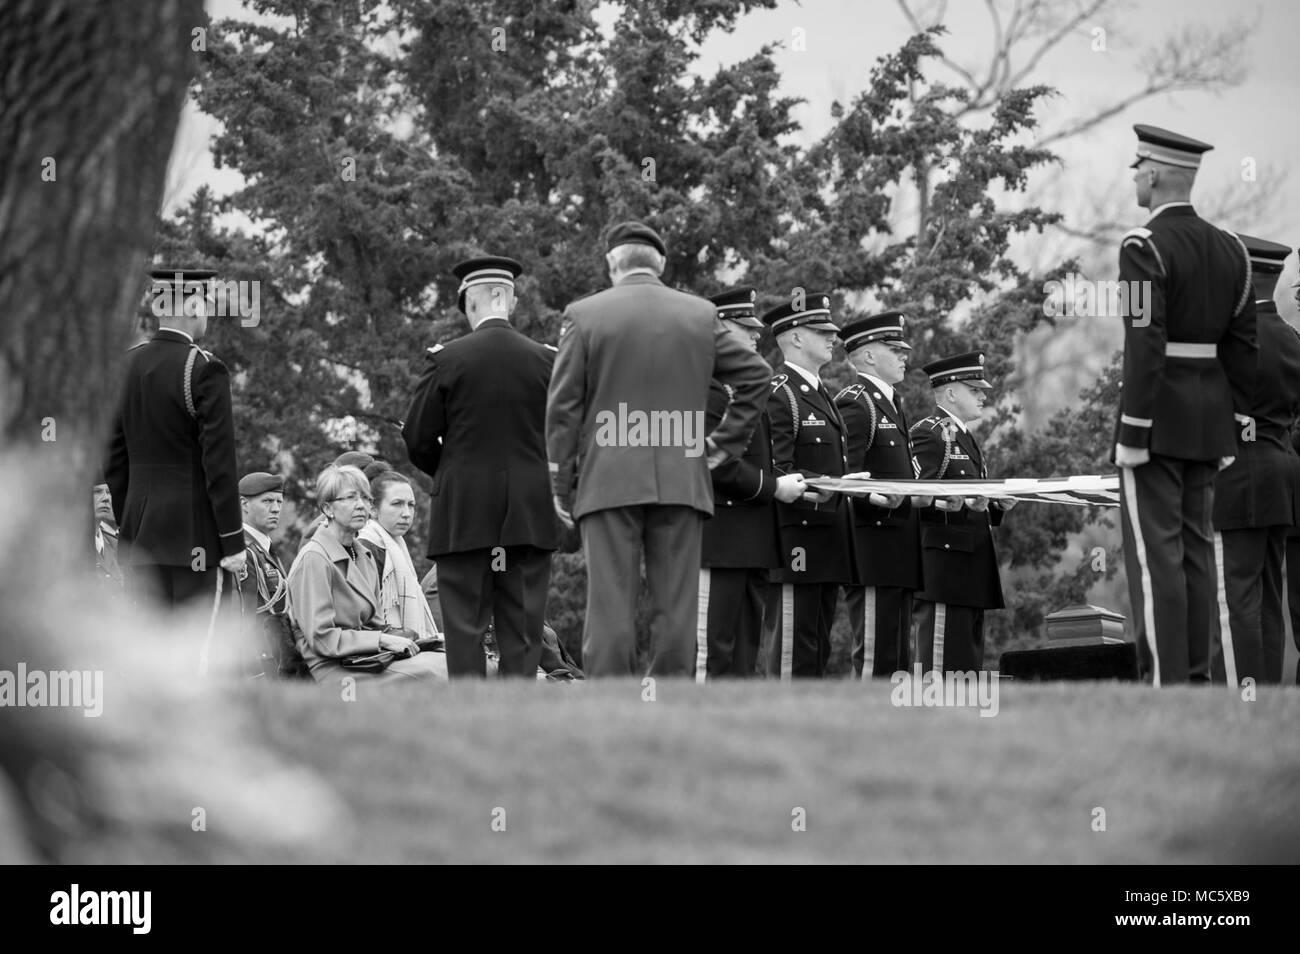 Kitti Einseln (left center) listens to remarks from a U.S. Army Chaplain during the full honors funeral of her husband, U.S. Army Col. and Estonian Gen.Einseln, in Section 34 of Arlington National Cemetery, Arlington, Virginia, April 2, 2018.  Born in Estonia, Einseln immigrated to the United States in 1949 and enrolled in the U.S. Army in 1950 at the outbreak of the Korean War. He served with Special Forces in the Vietnam War and retiring as a Colonel in 1985. In 1993, Einseln returned to Estonia at the request of Estonian President Lennart Meri to serve as the first commander of the Estonian - Stock Image